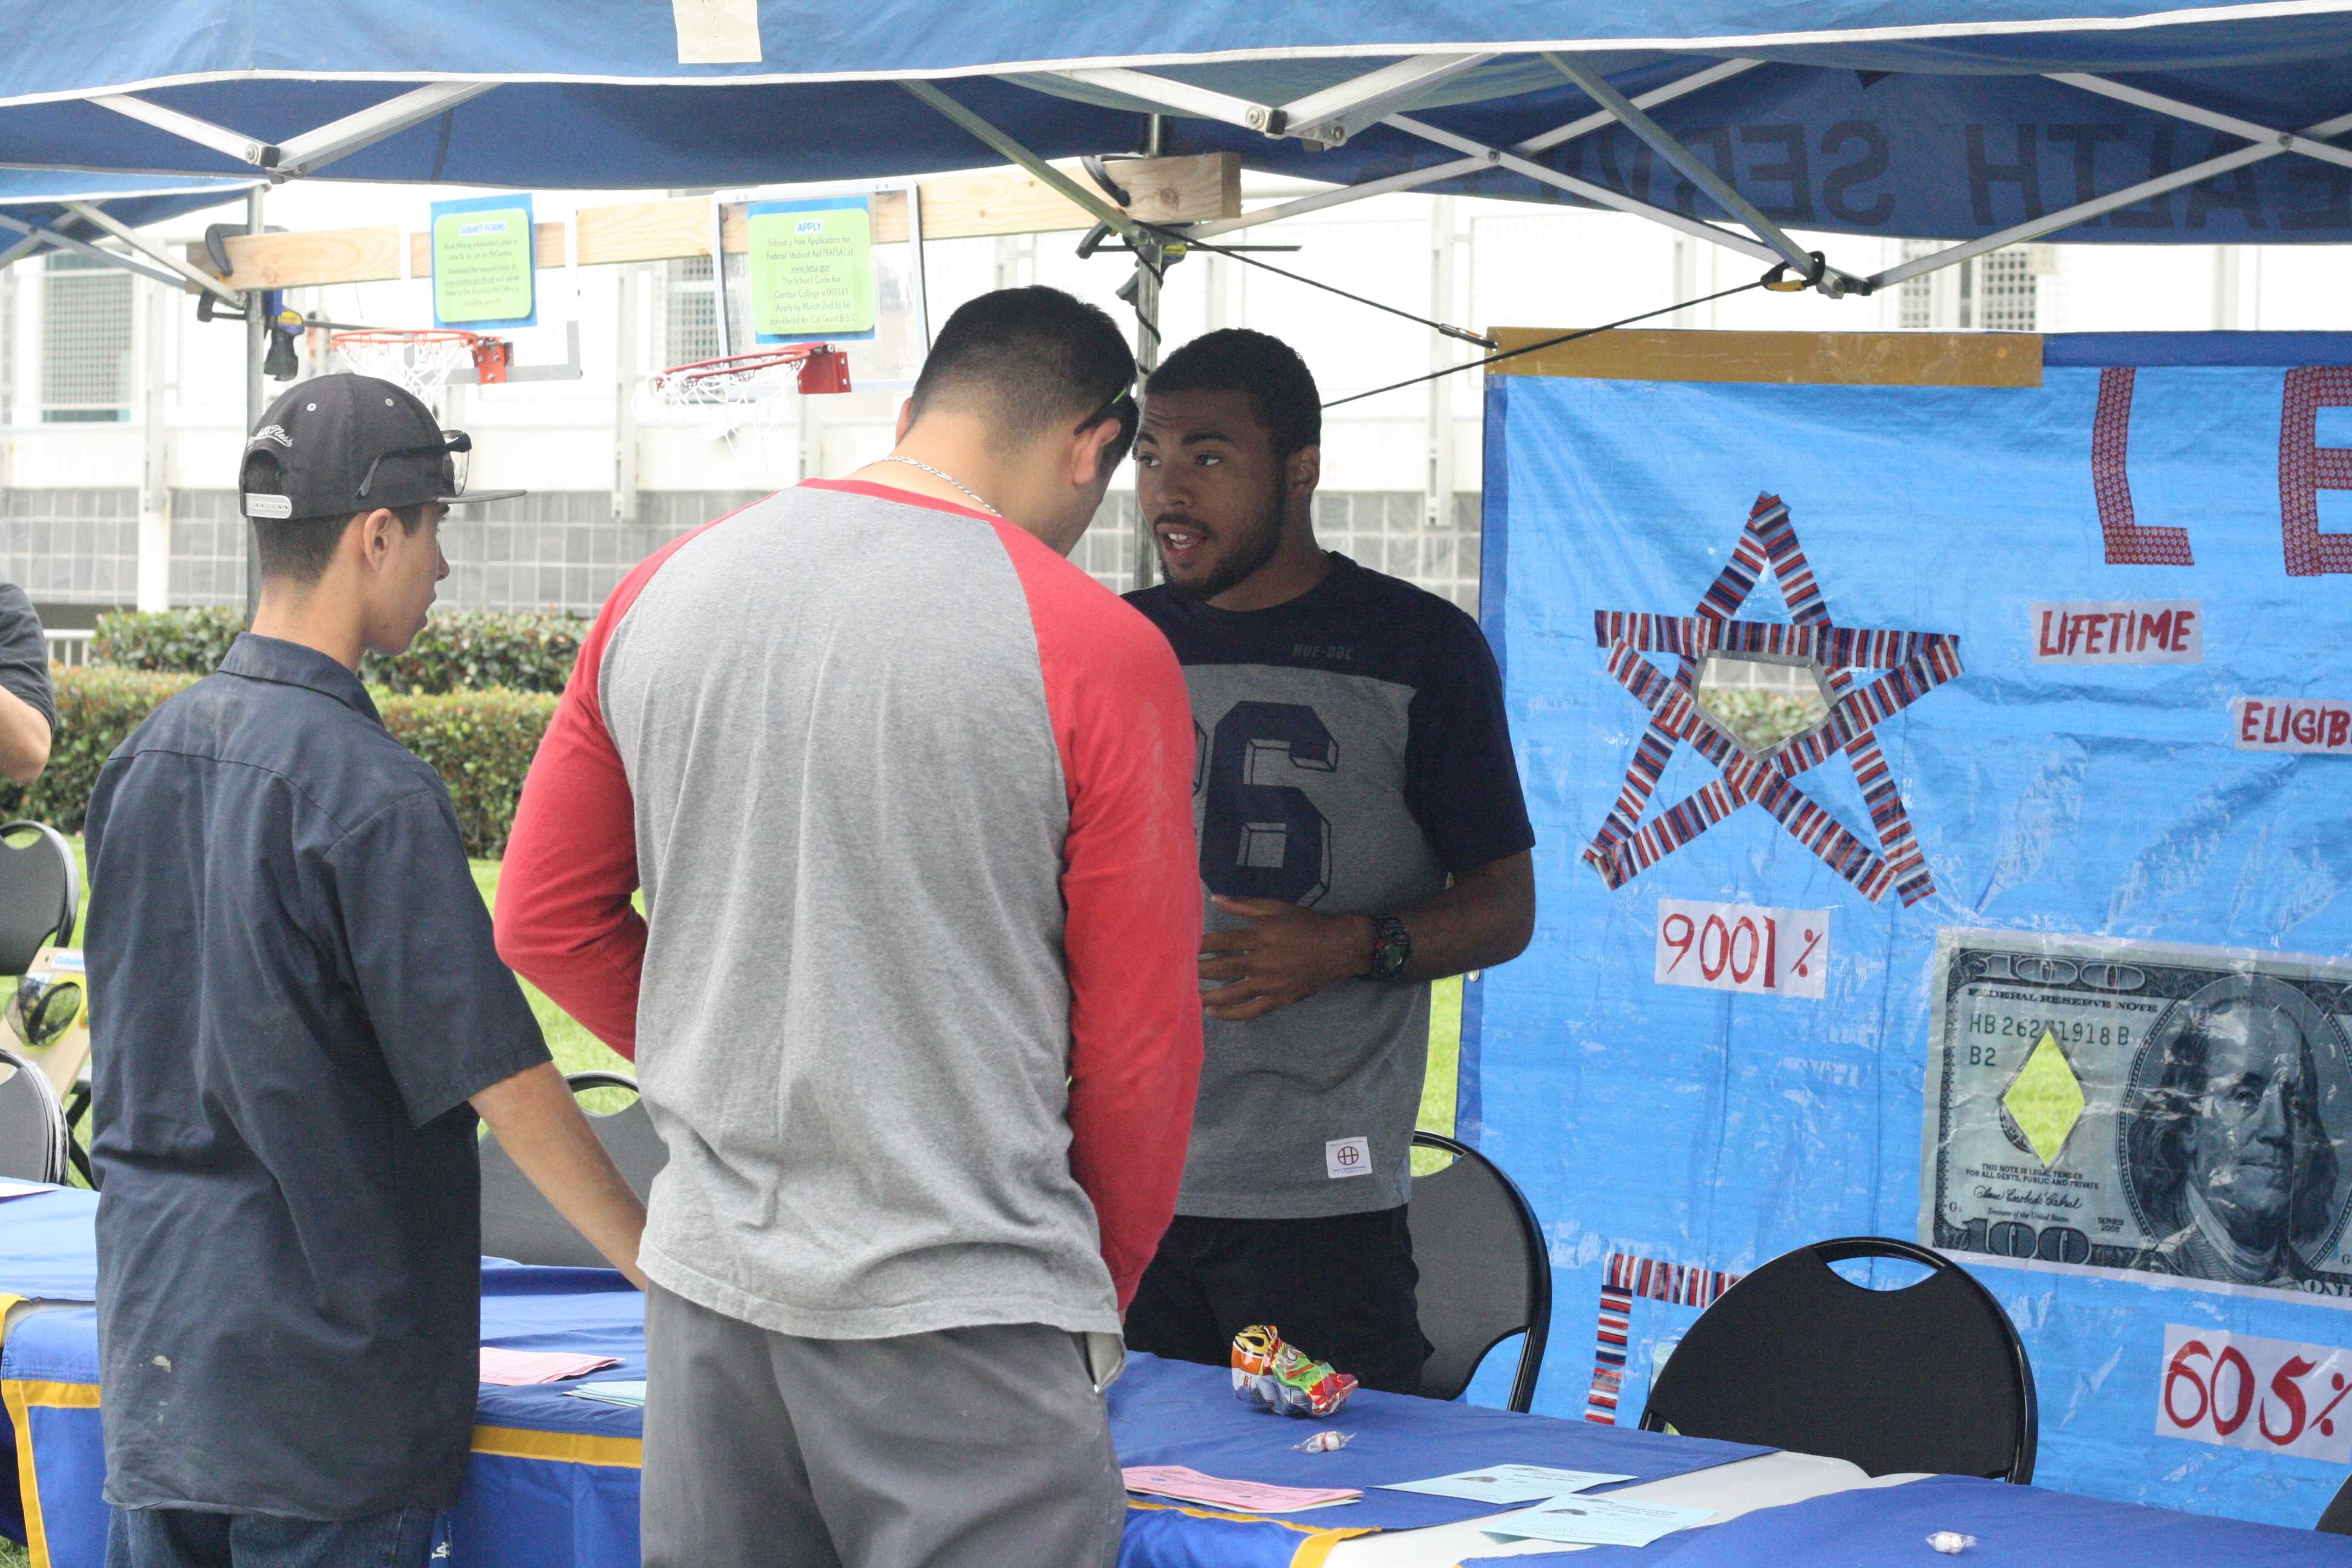 Computer Science major Cornelius Wells helps two students at a game booth during the Financial Aid Awareness Fair. The game booth provided information about FAFSA eligibility. Photo credit: Gustavo Lopez